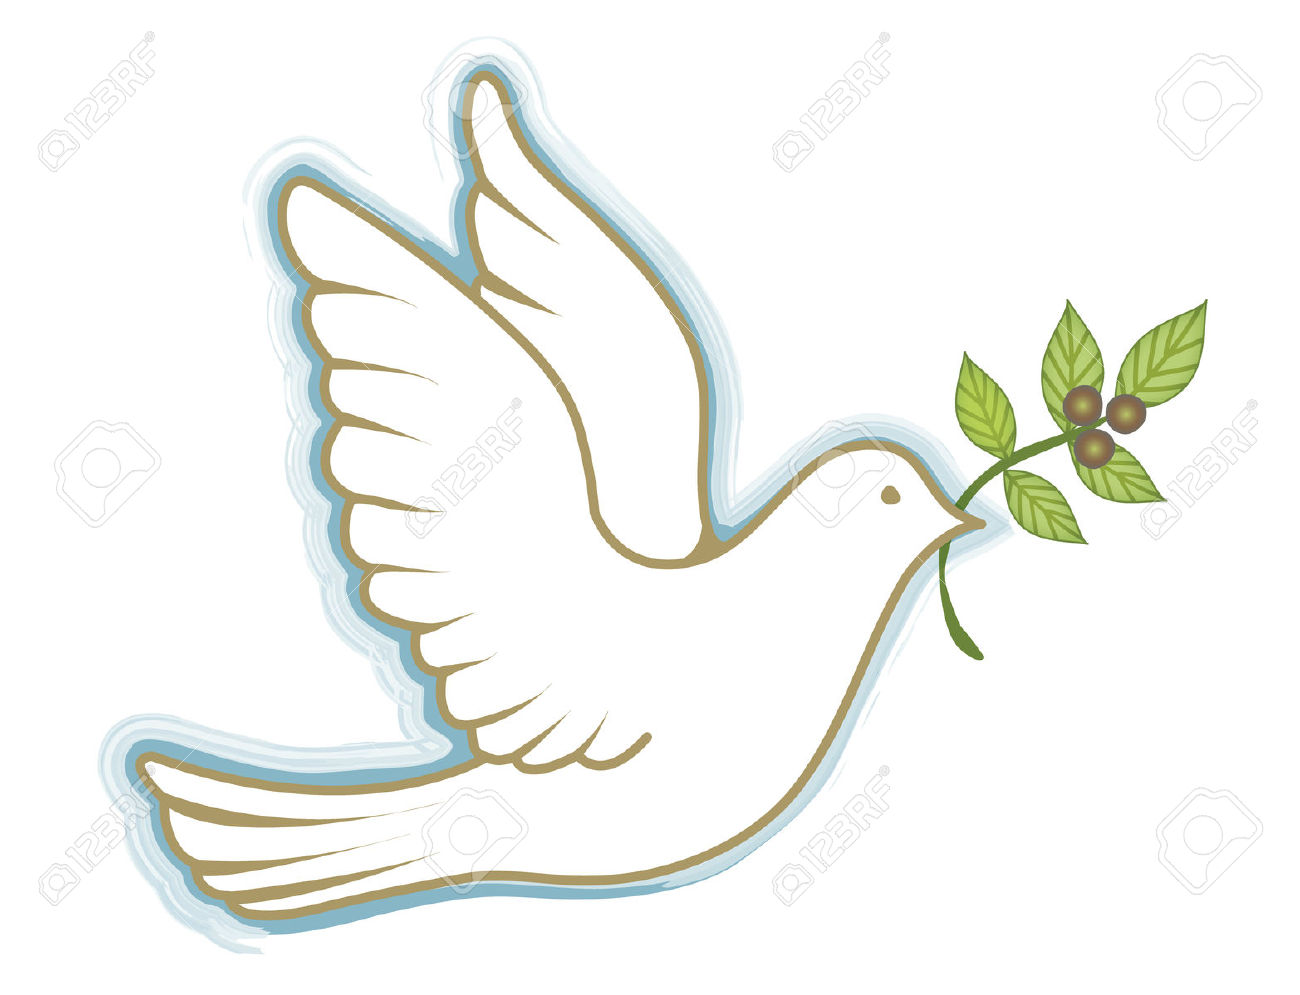 Peace clipart obituary A 467 Remembering Family Crystal